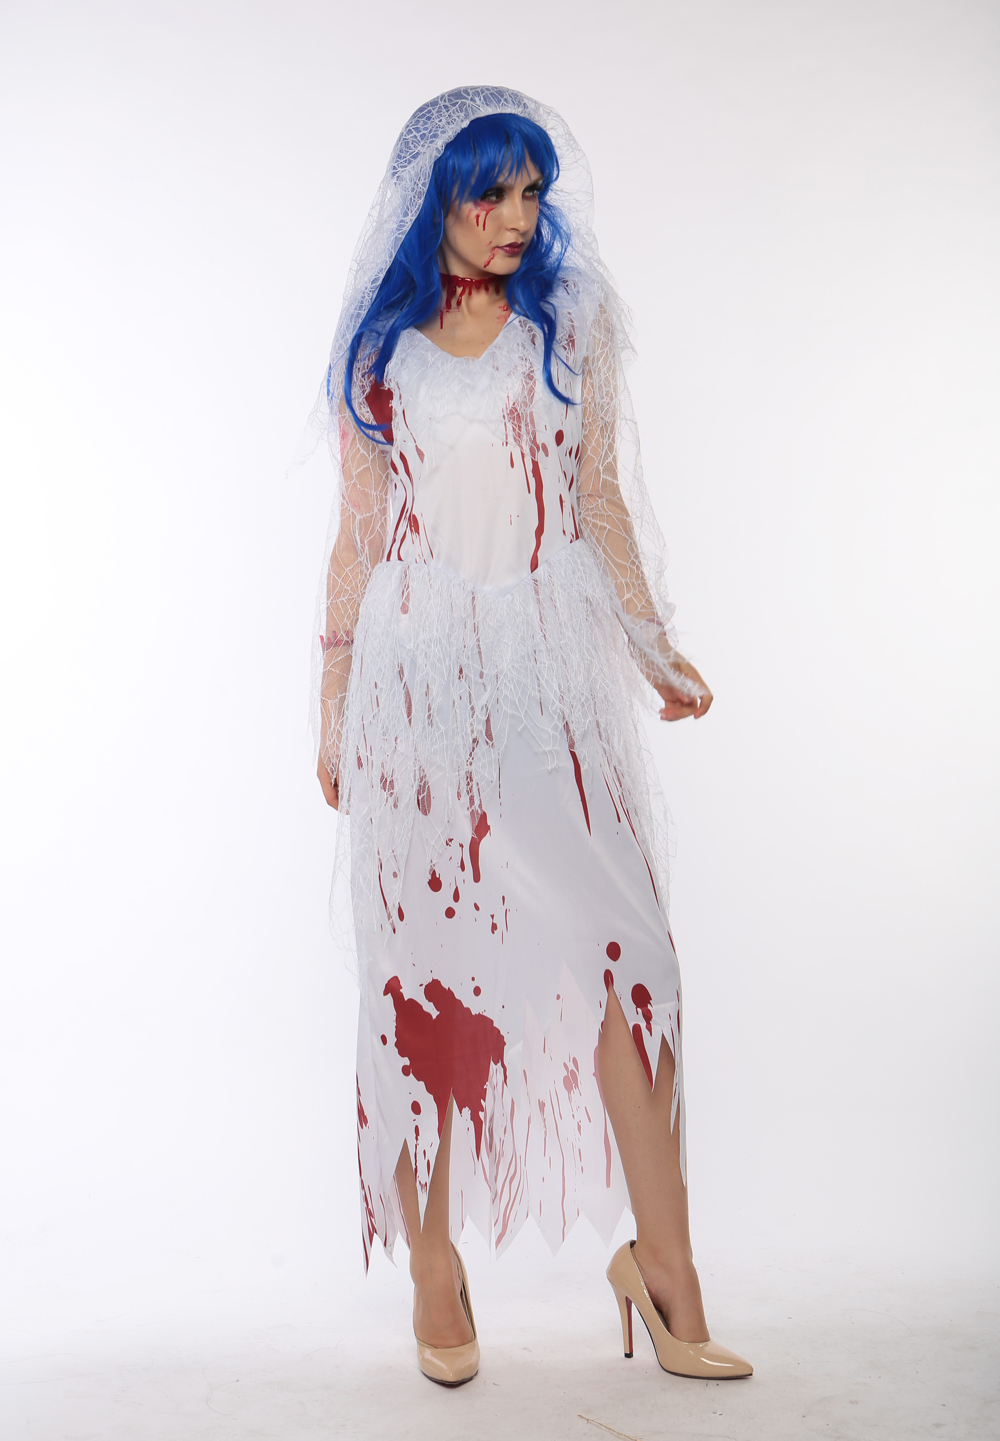 F1713 zombie long white bride costume,it comes with headwear,dress